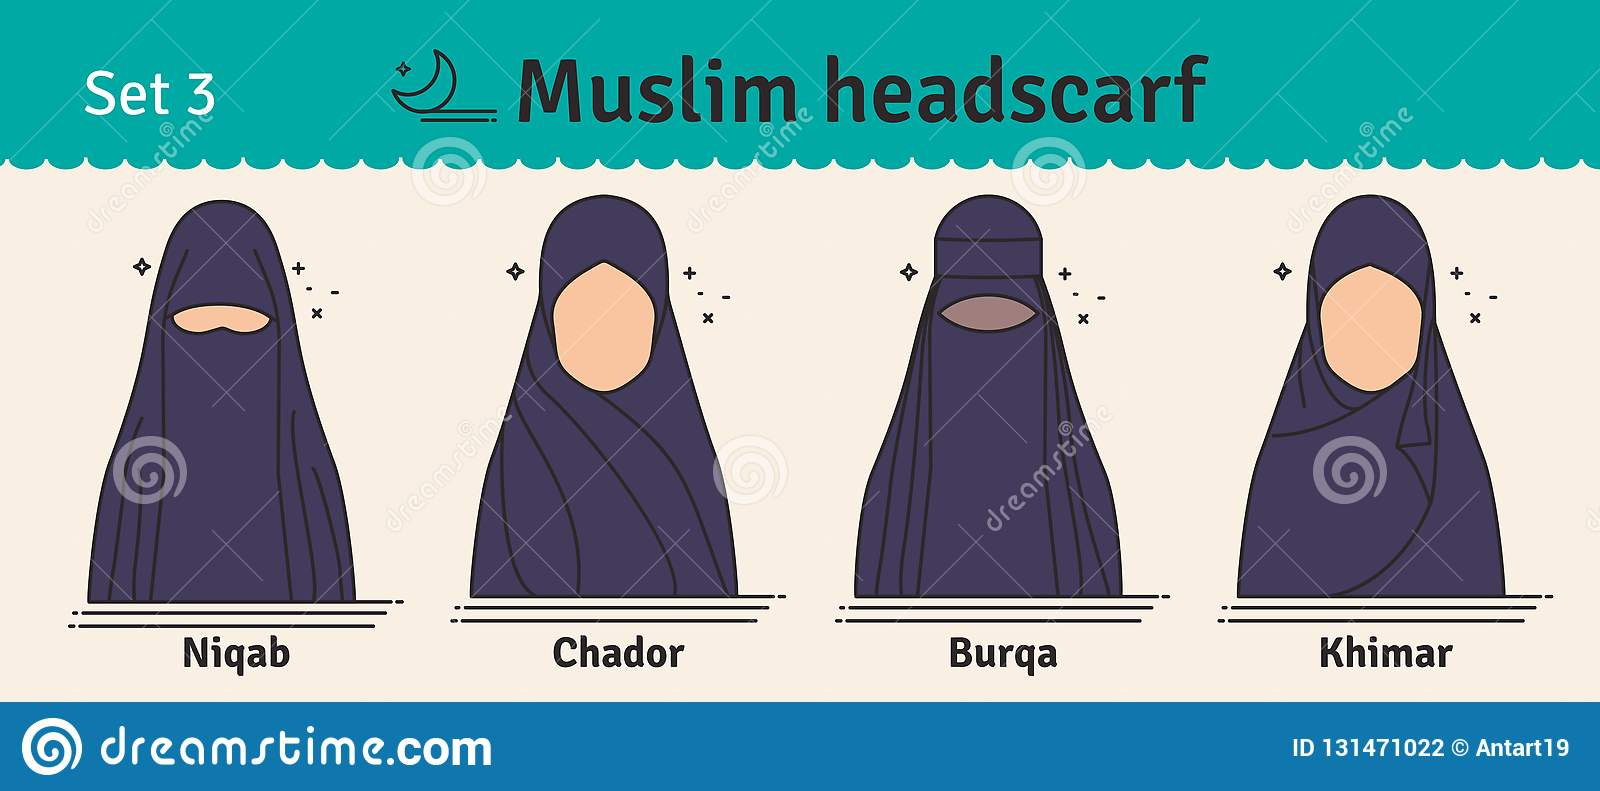 Muslim headwear guide. The set of different types of women headscarves.  Vector icon colorful illustration. Set 3. ba7a671ba4e